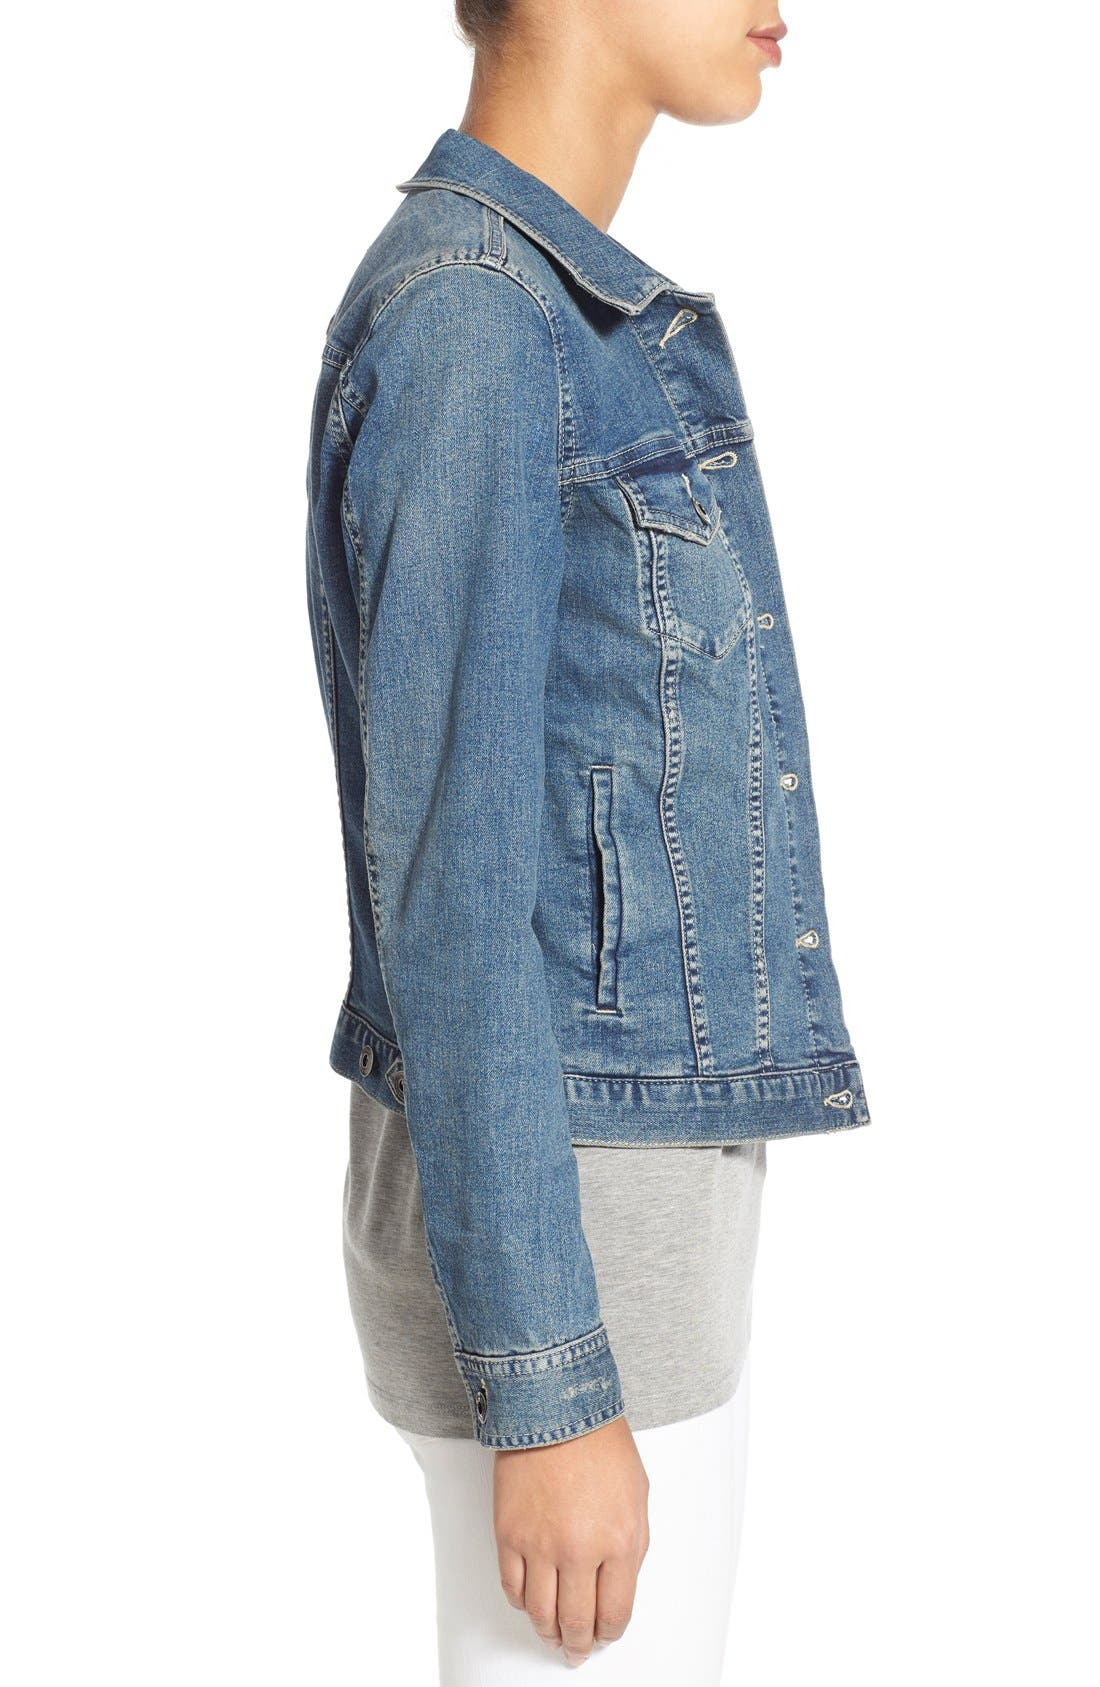 VINCE CAMUTO, Two by Vince Camuto Jean Jacket, Alternate thumbnail 13, color, AUTHENTIC